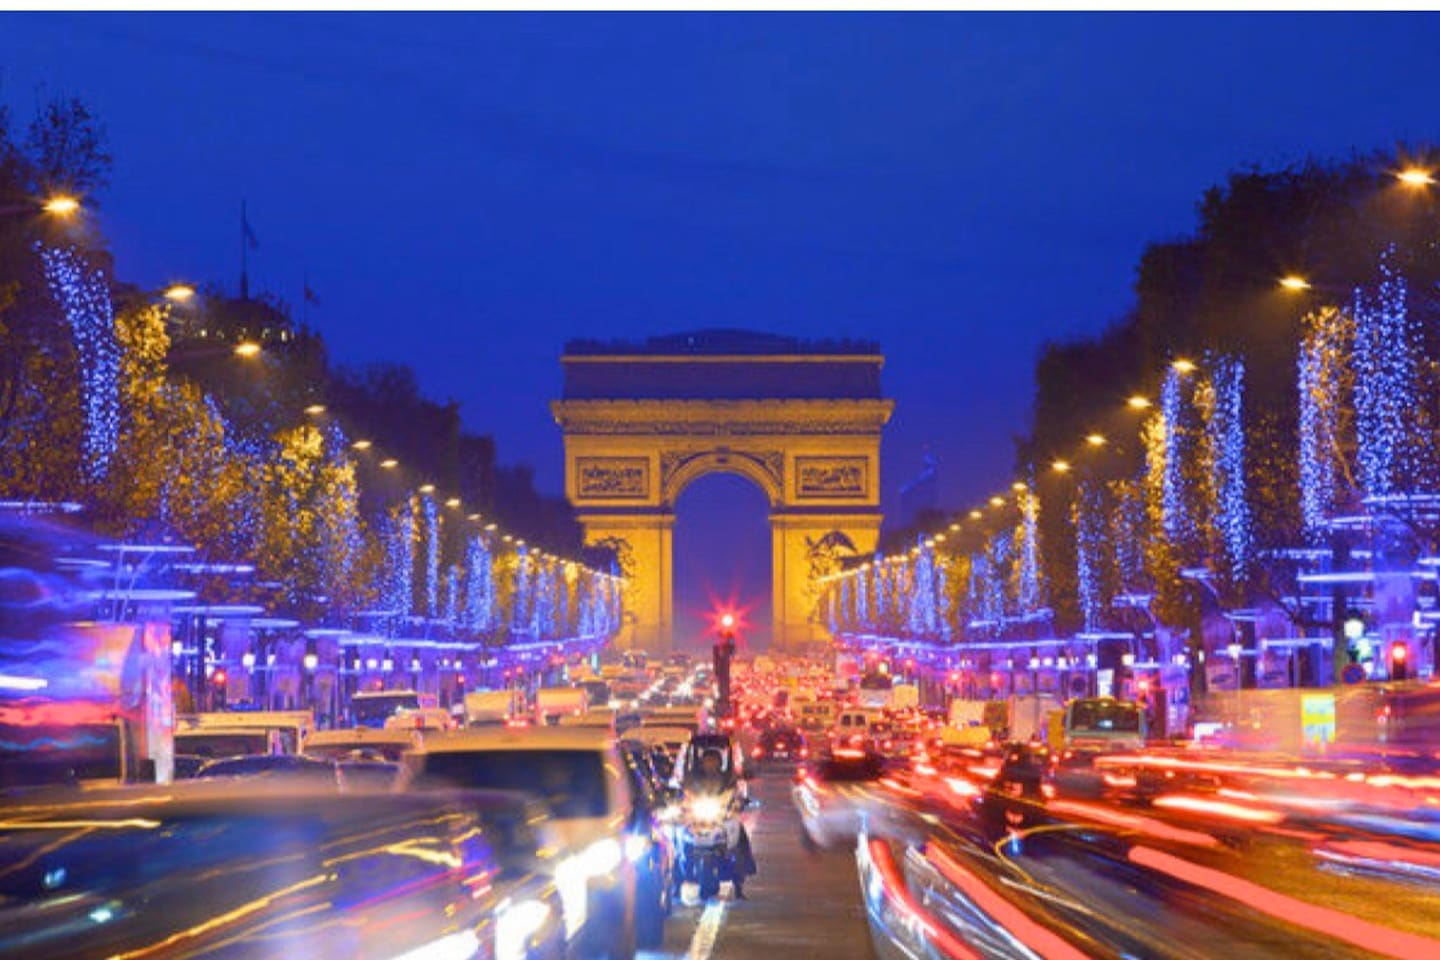 3 mins walking from Triumph Arch and Champs Elysees